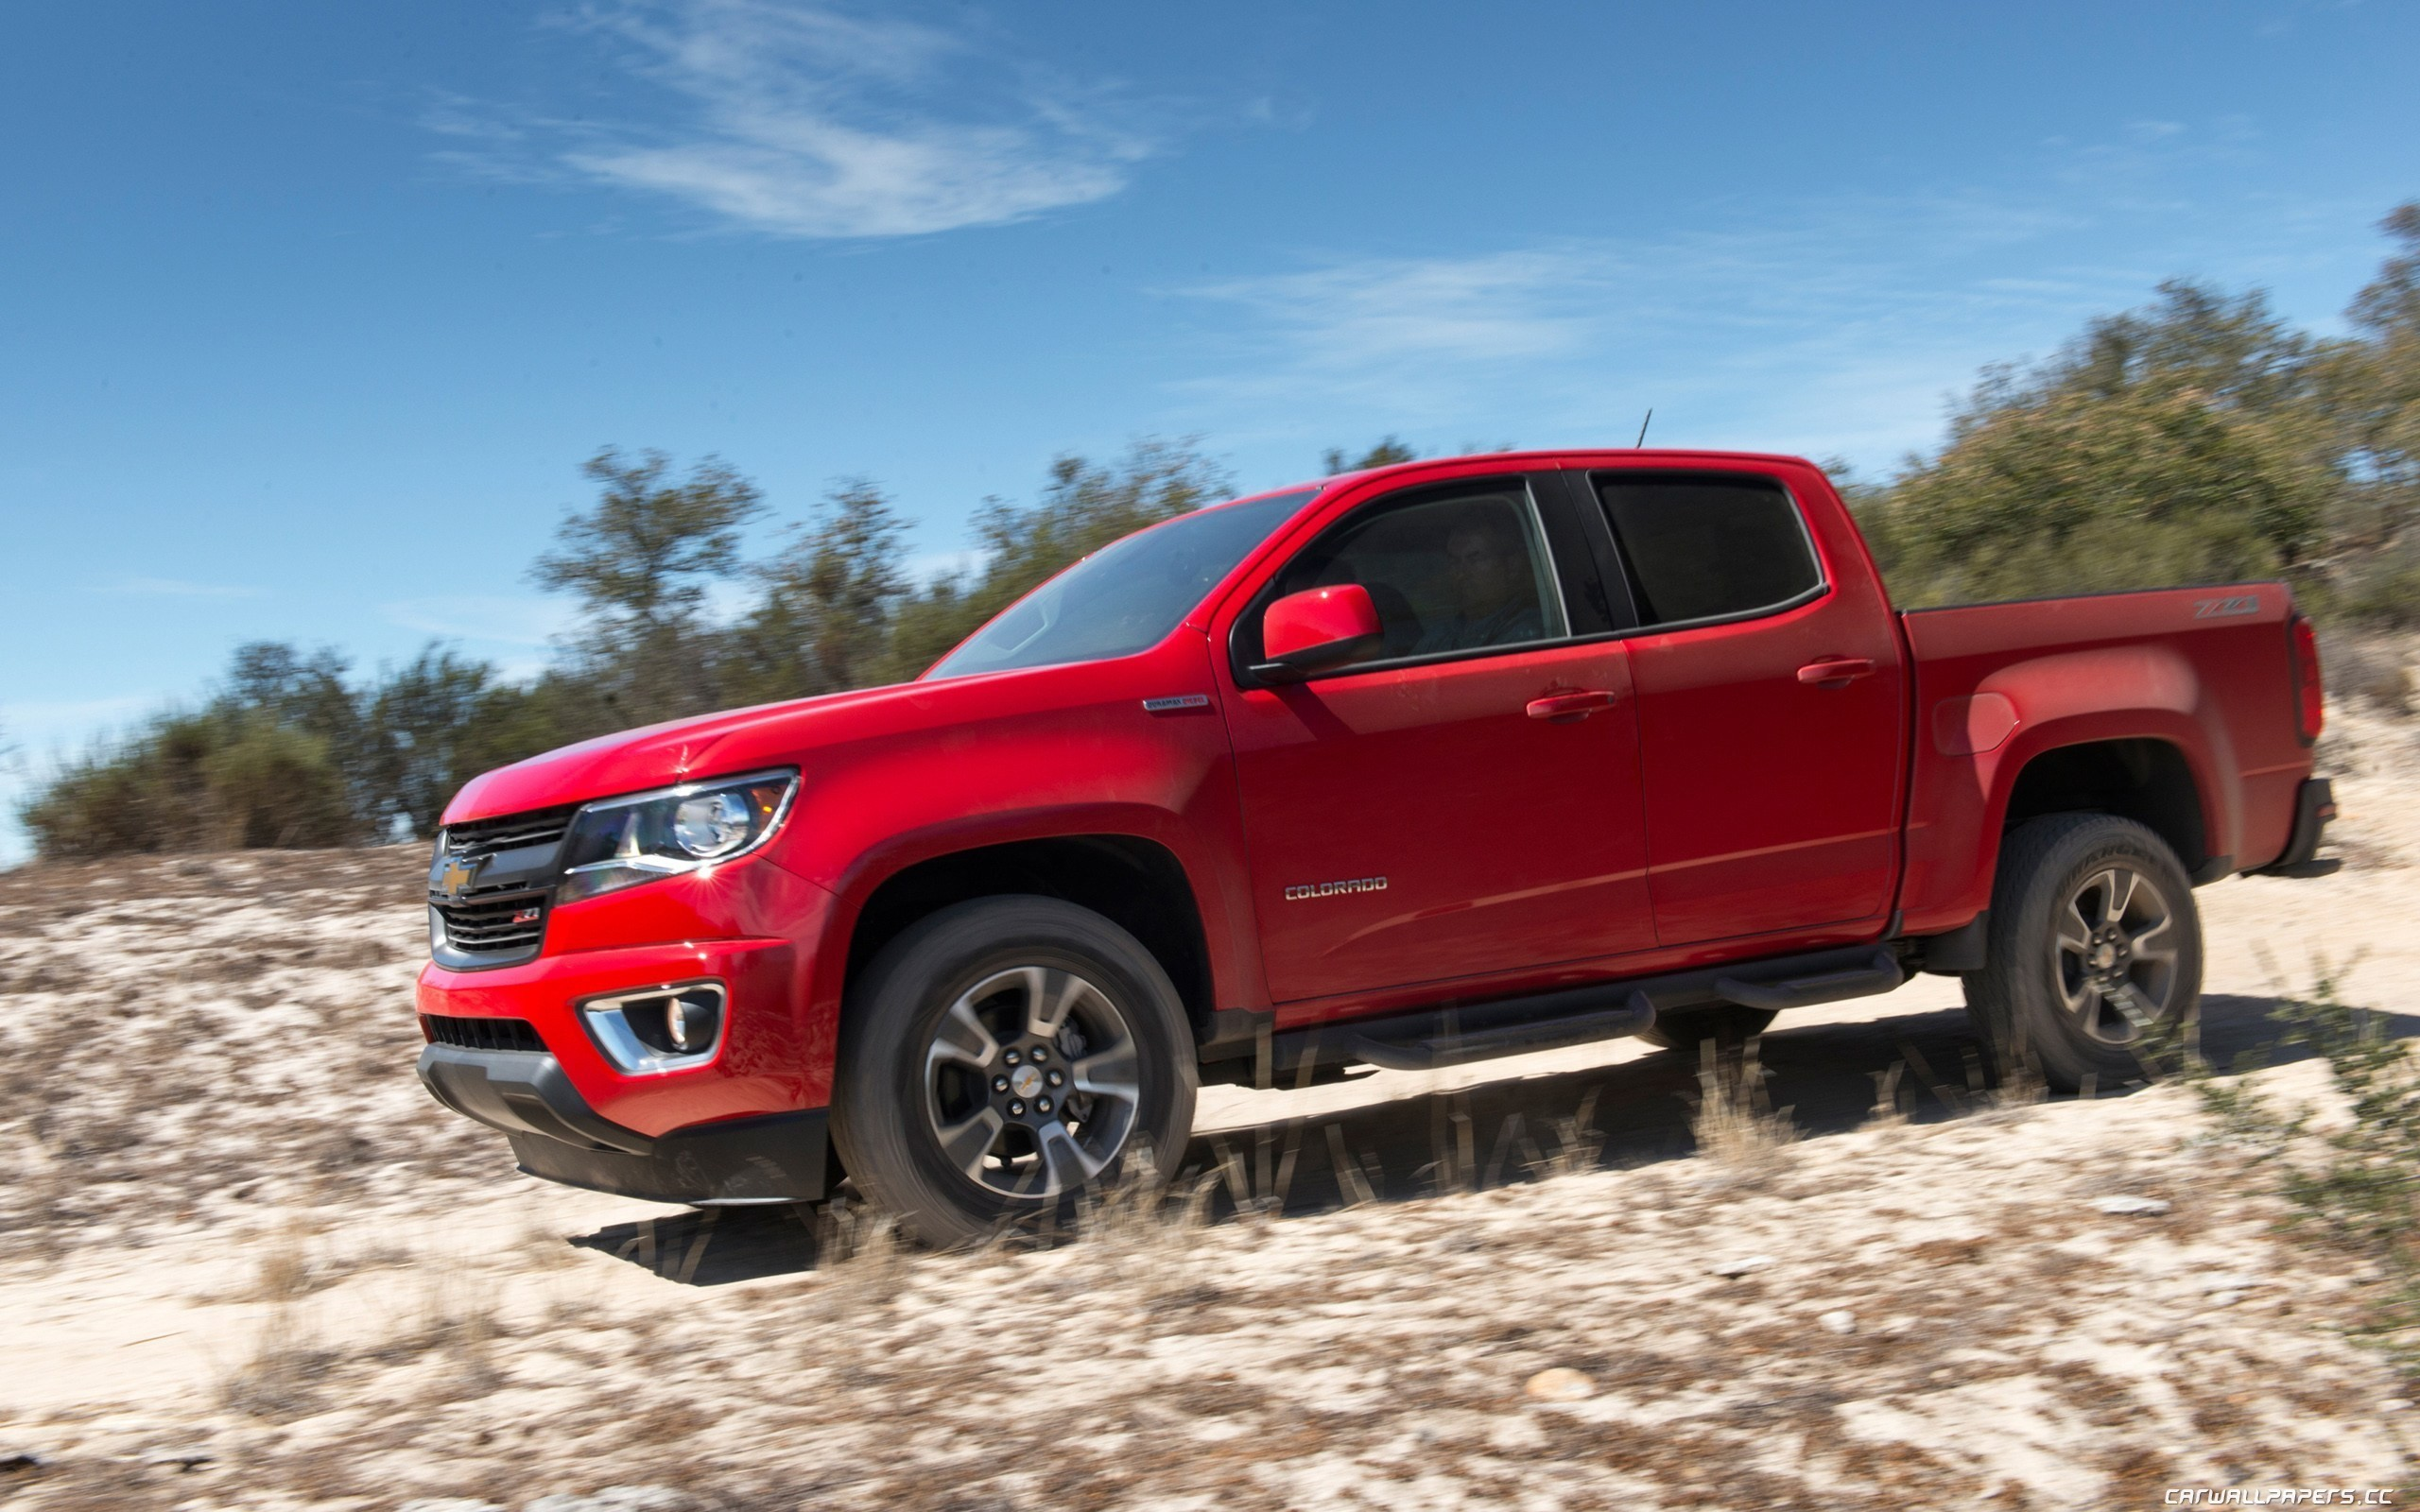 2560x1600 Duramax Wallpapers Chevrolet Colorado 2012 Wallpaper